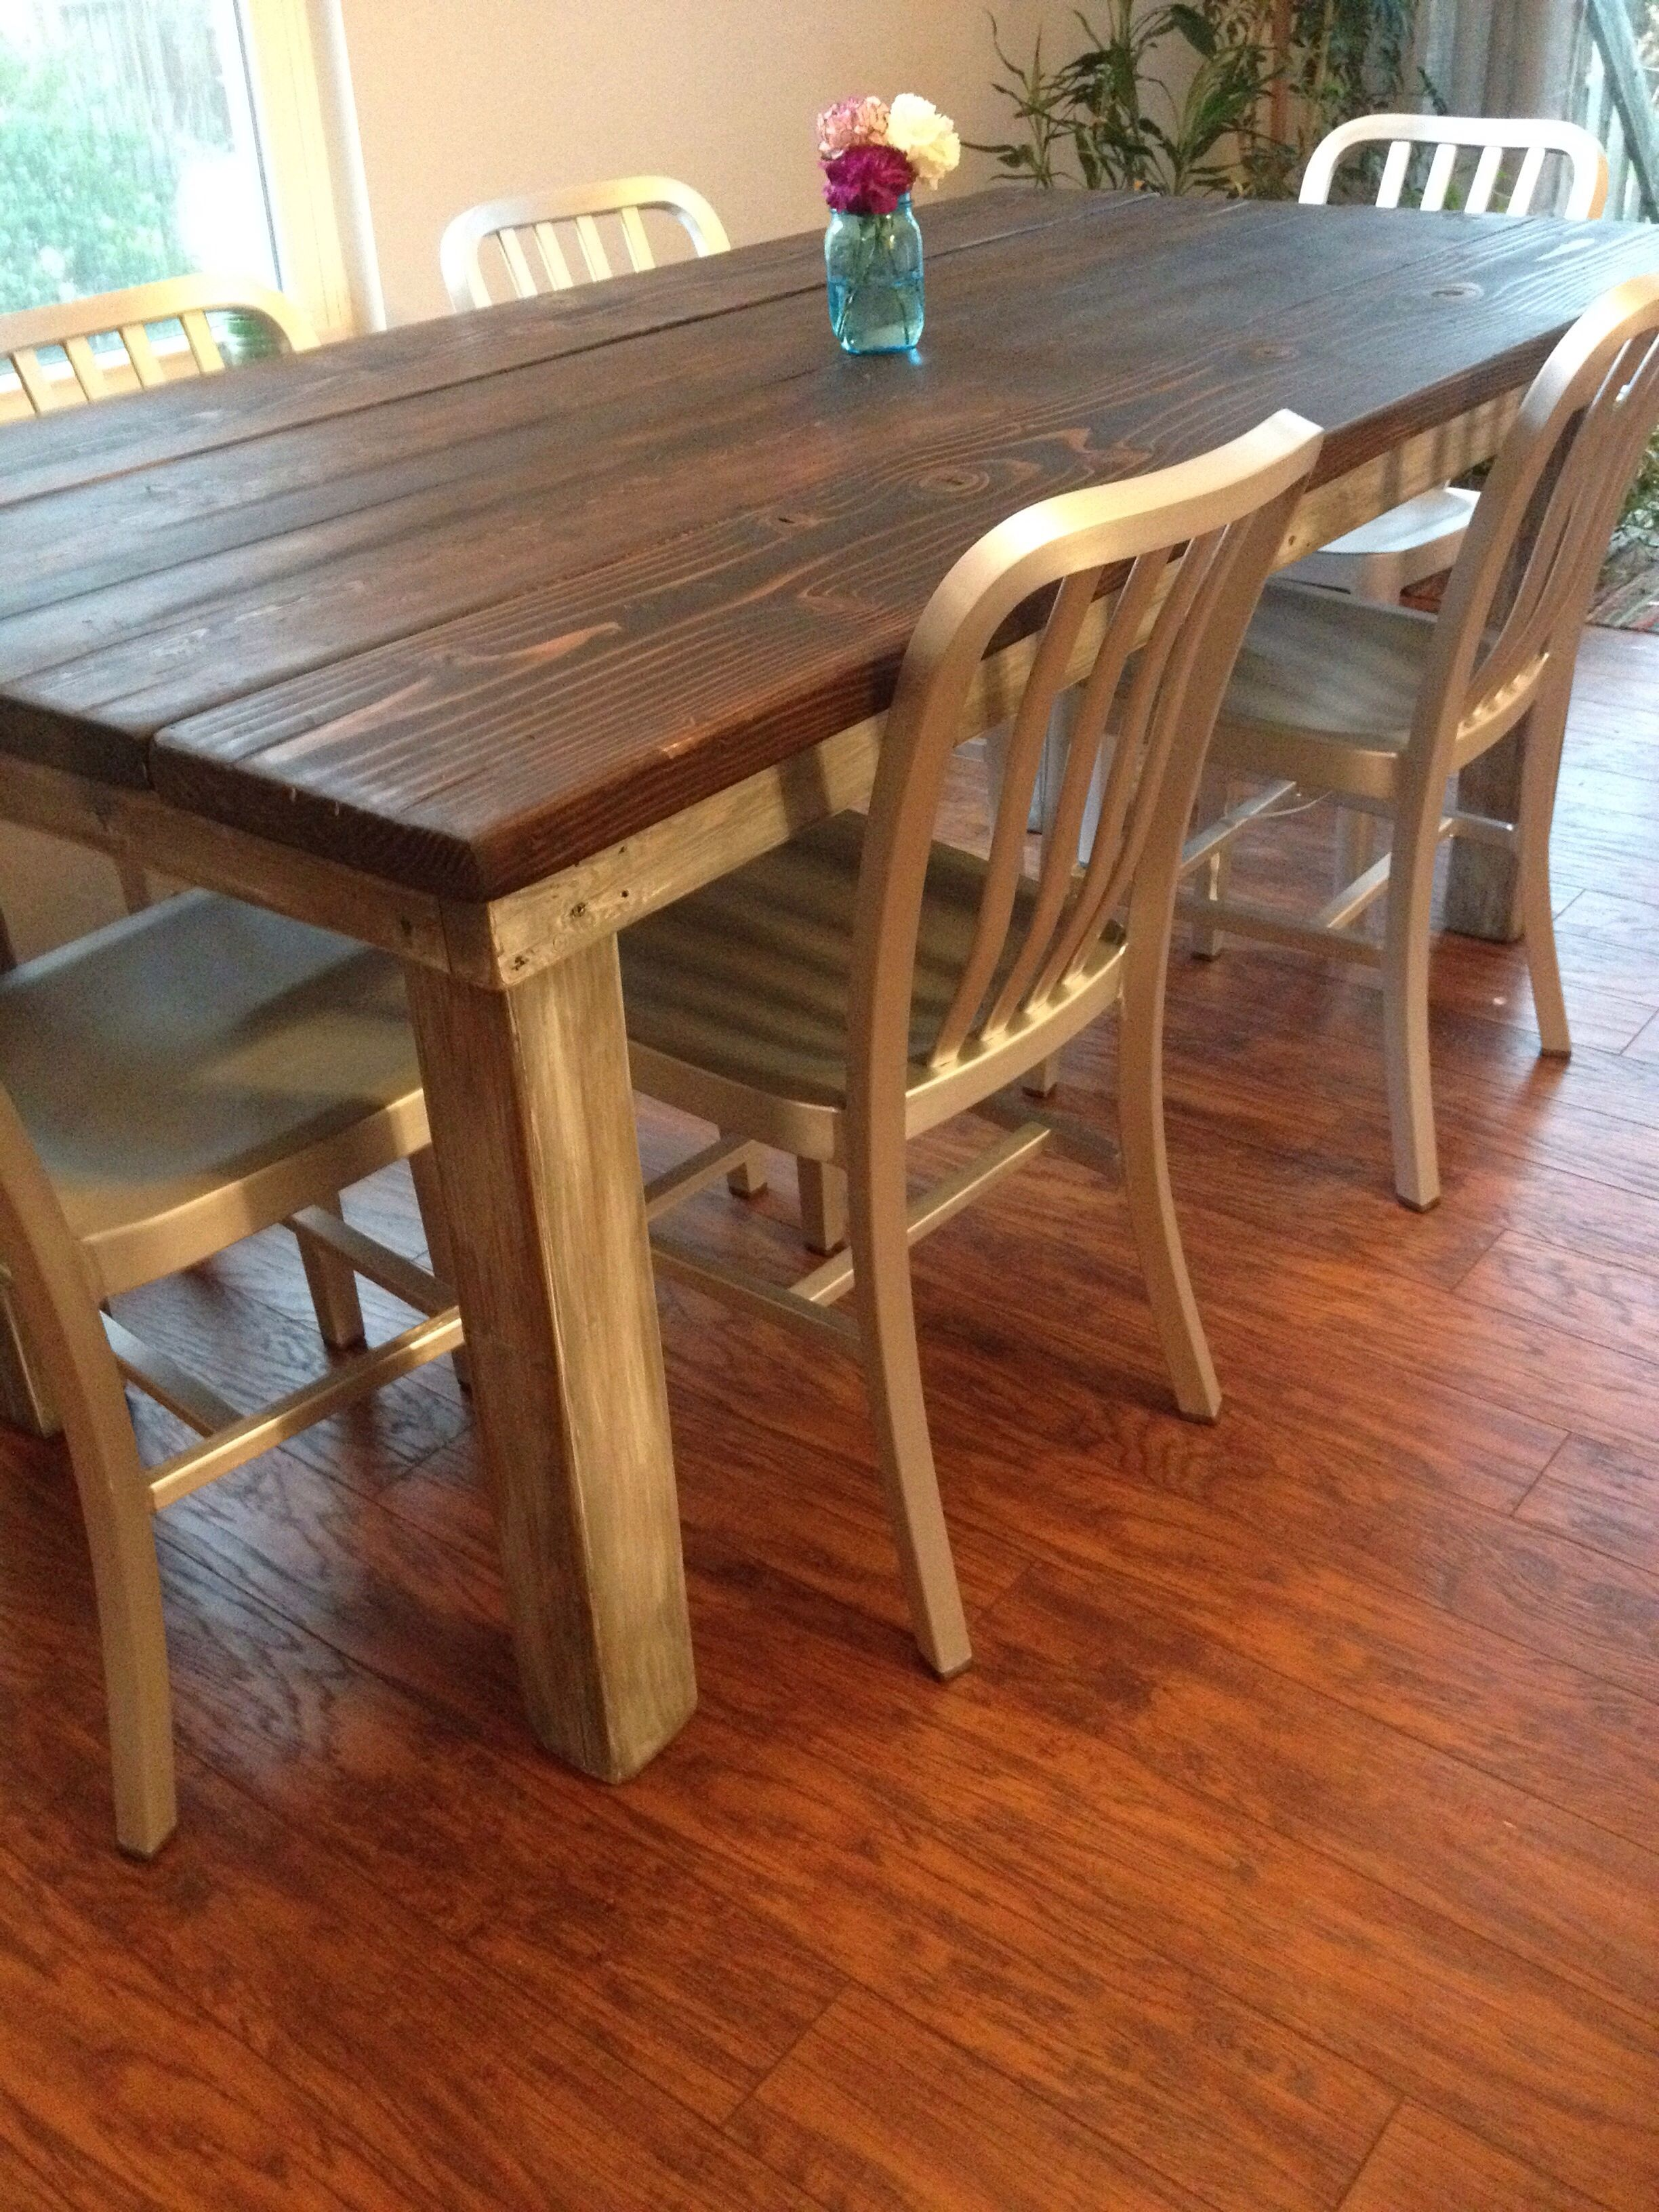 Custom Planked Top Farmhouse Table With Dark Walnut Stain And White Washed Gray Base Visit Http Www Markthecarpenter Colorado Real Wood Furniture